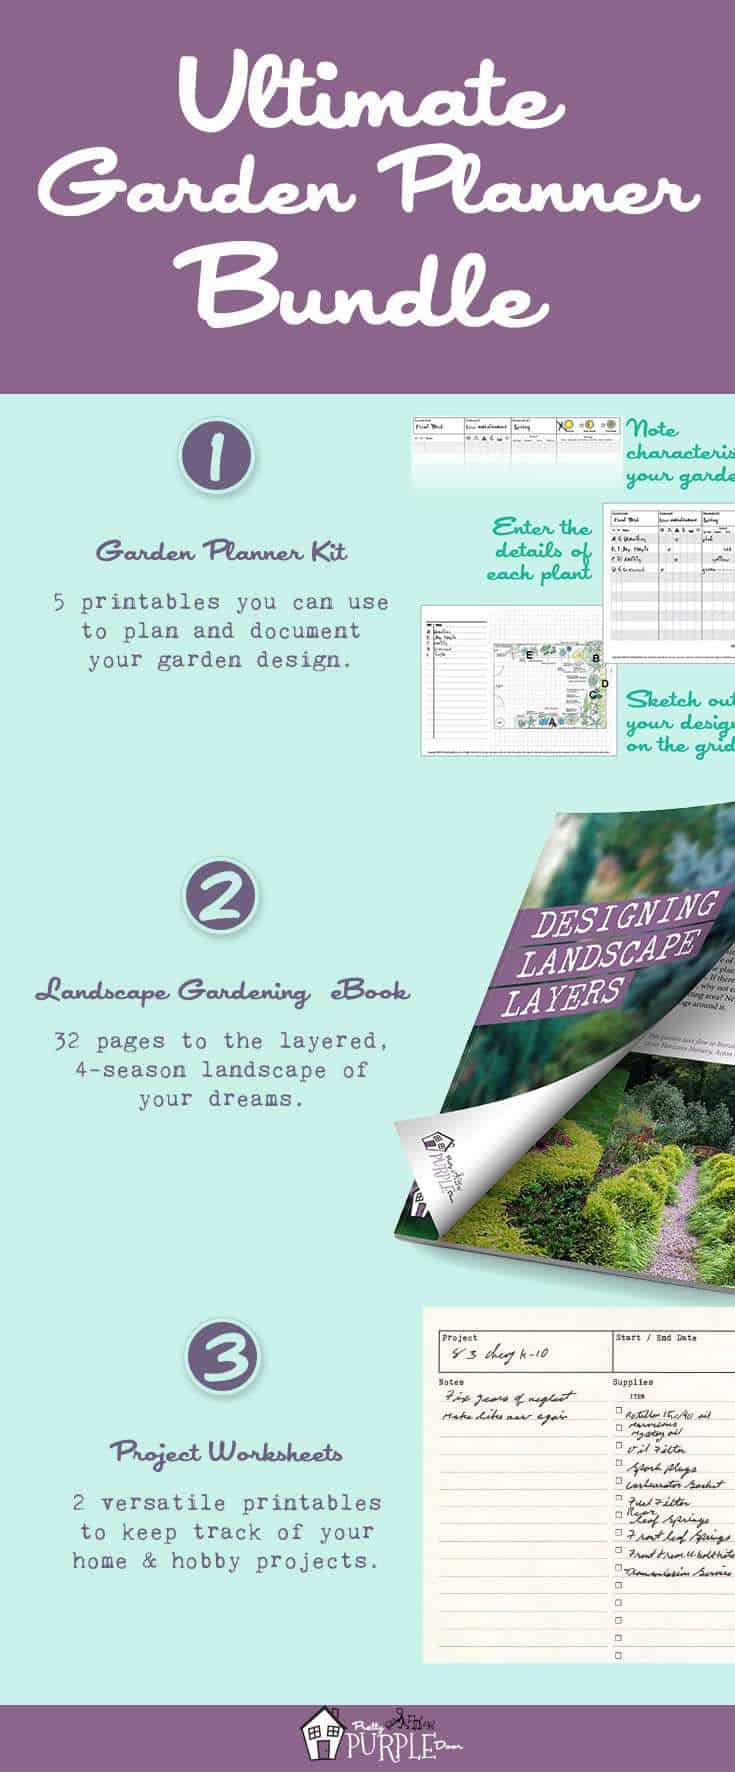 Ultimate Garden Planner Bundle Pinterest Image